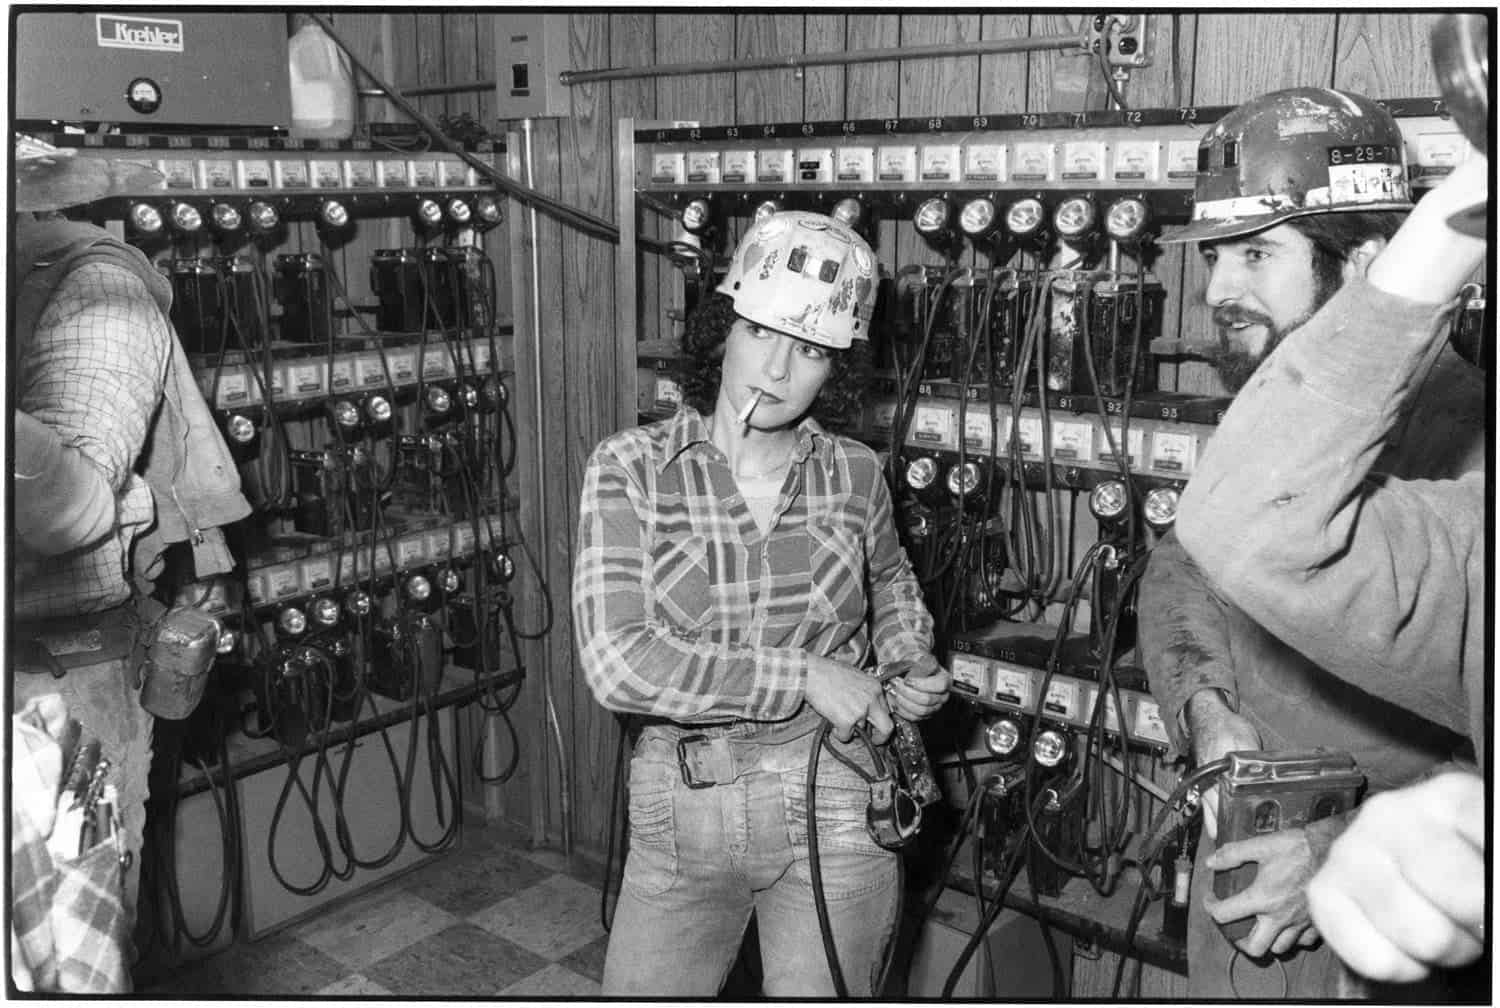 Woman Coal Miner Getting Ready for the Shift.  Consol Westland #2 Mine, Pennsylvania. All photos by Ted Wathen